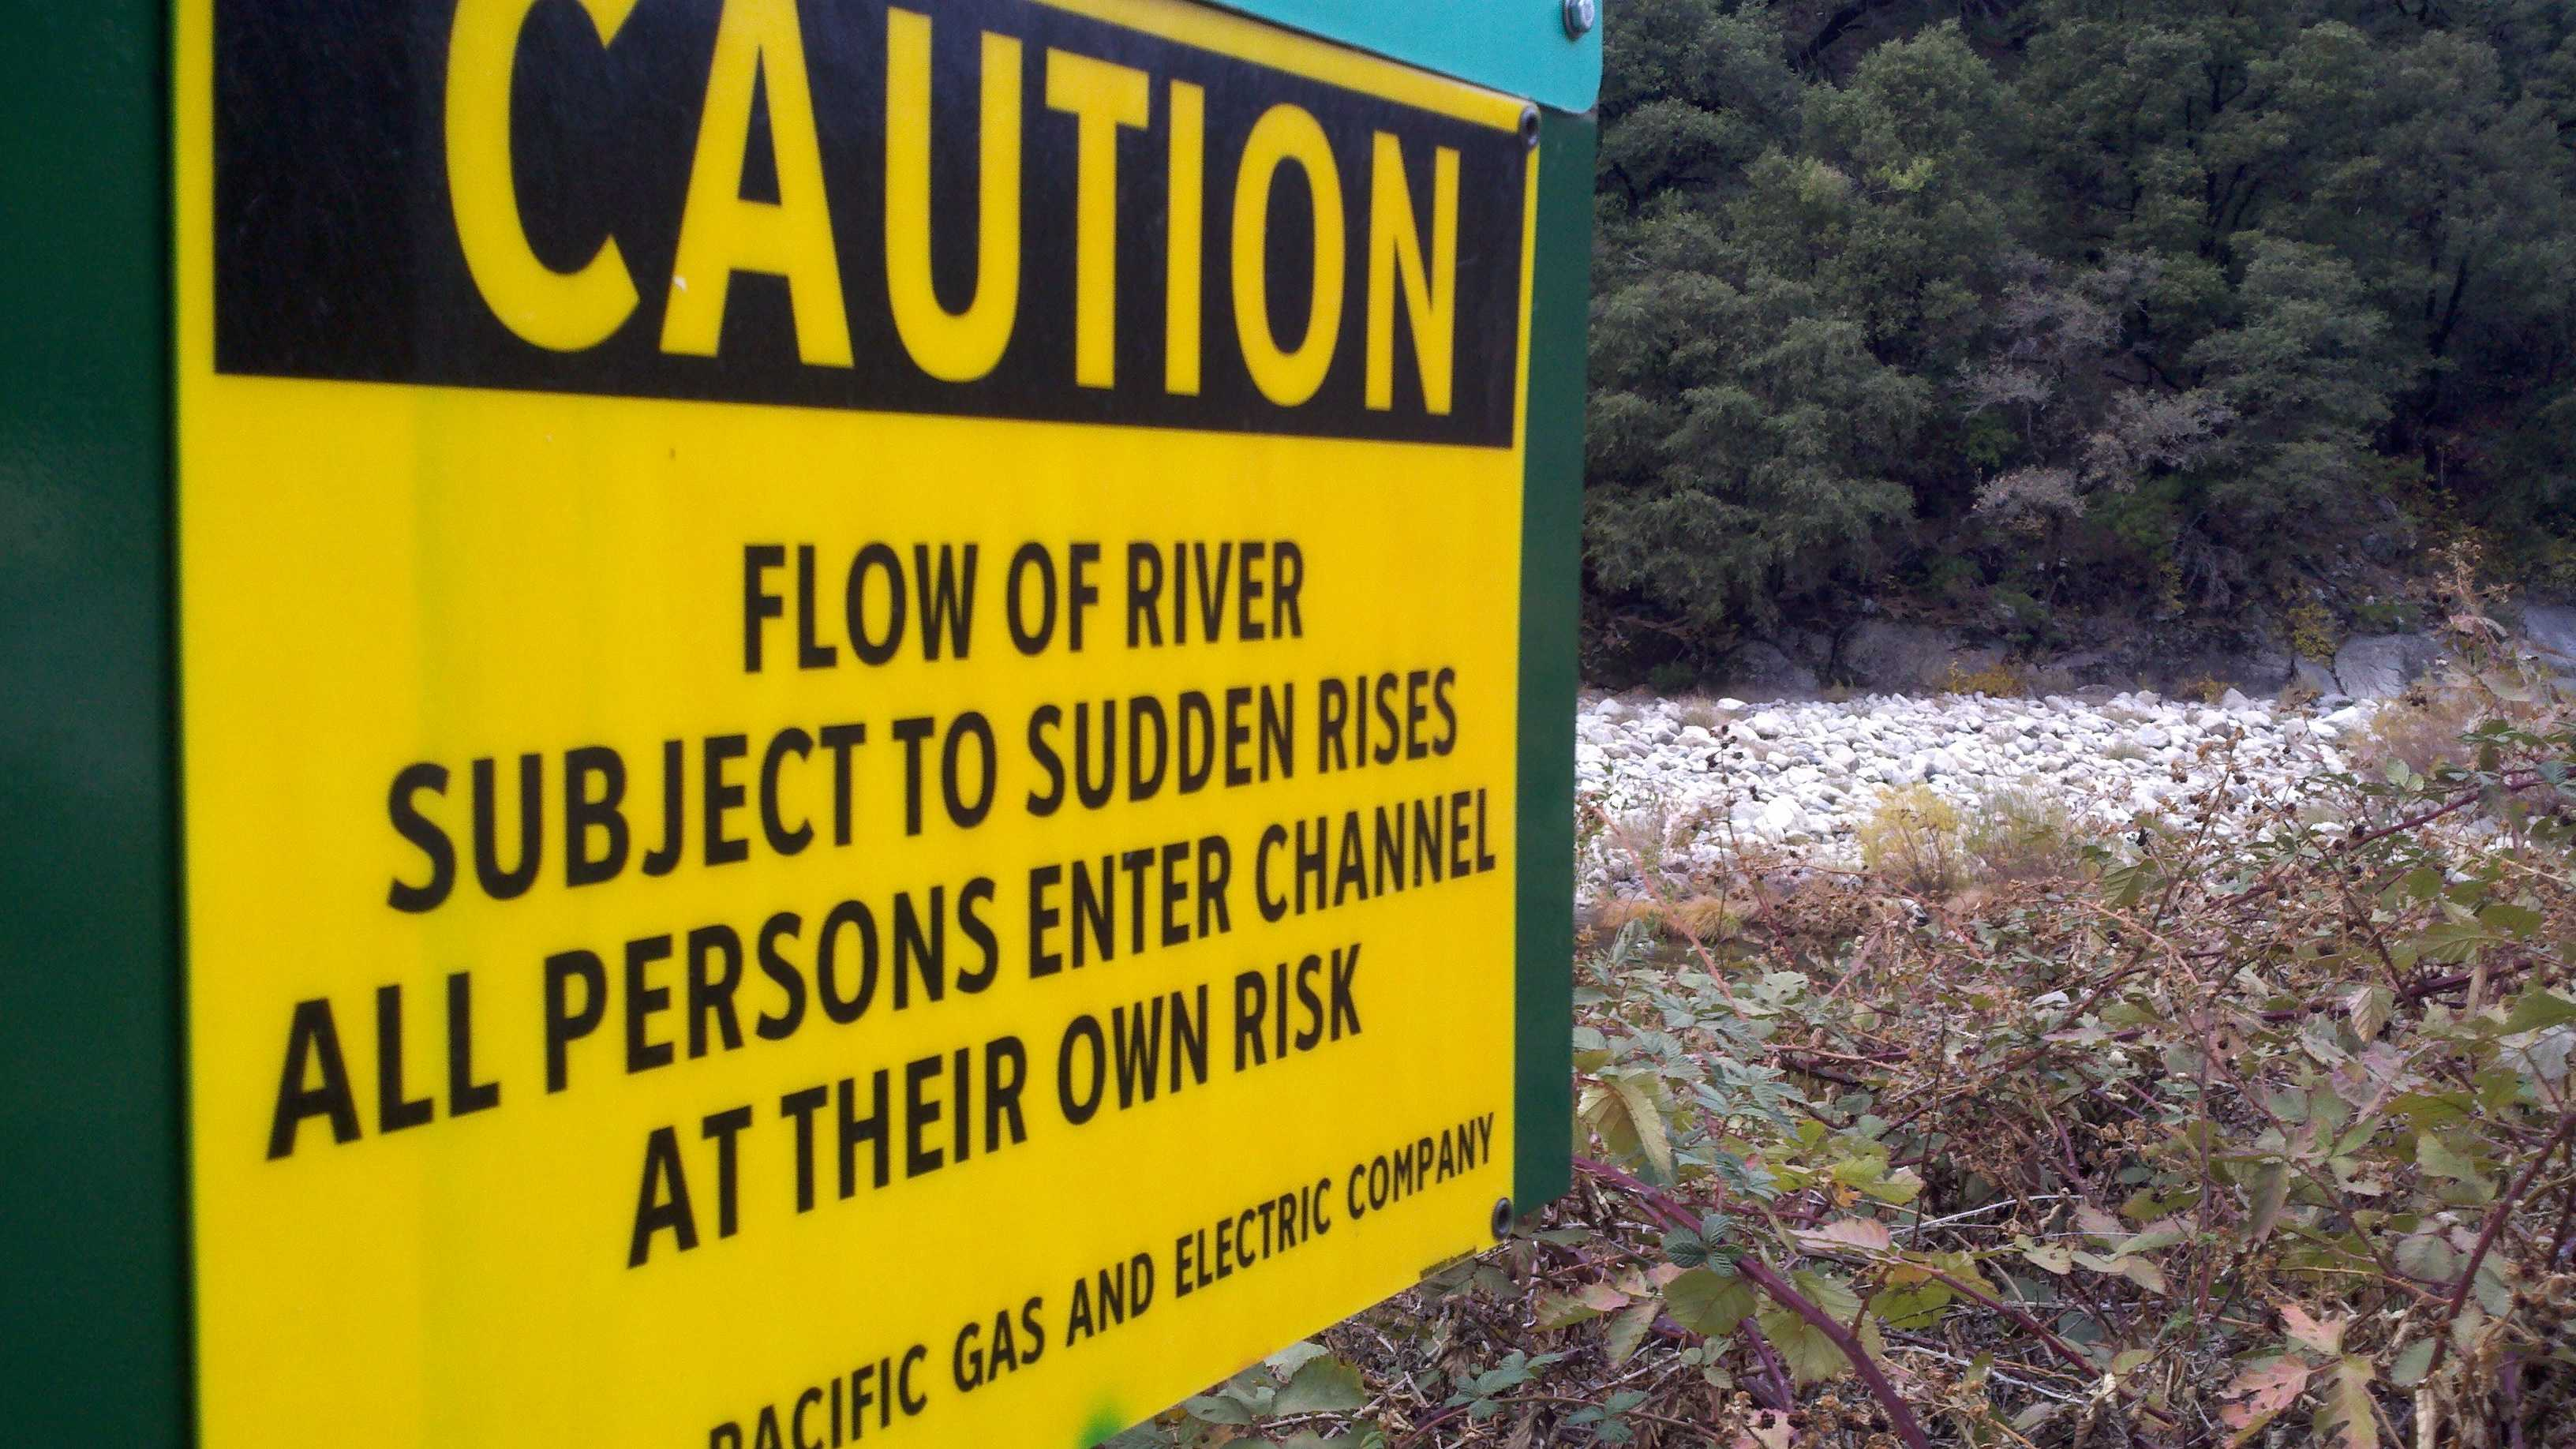 A sign along the Feather River warns of sudden water level changes.